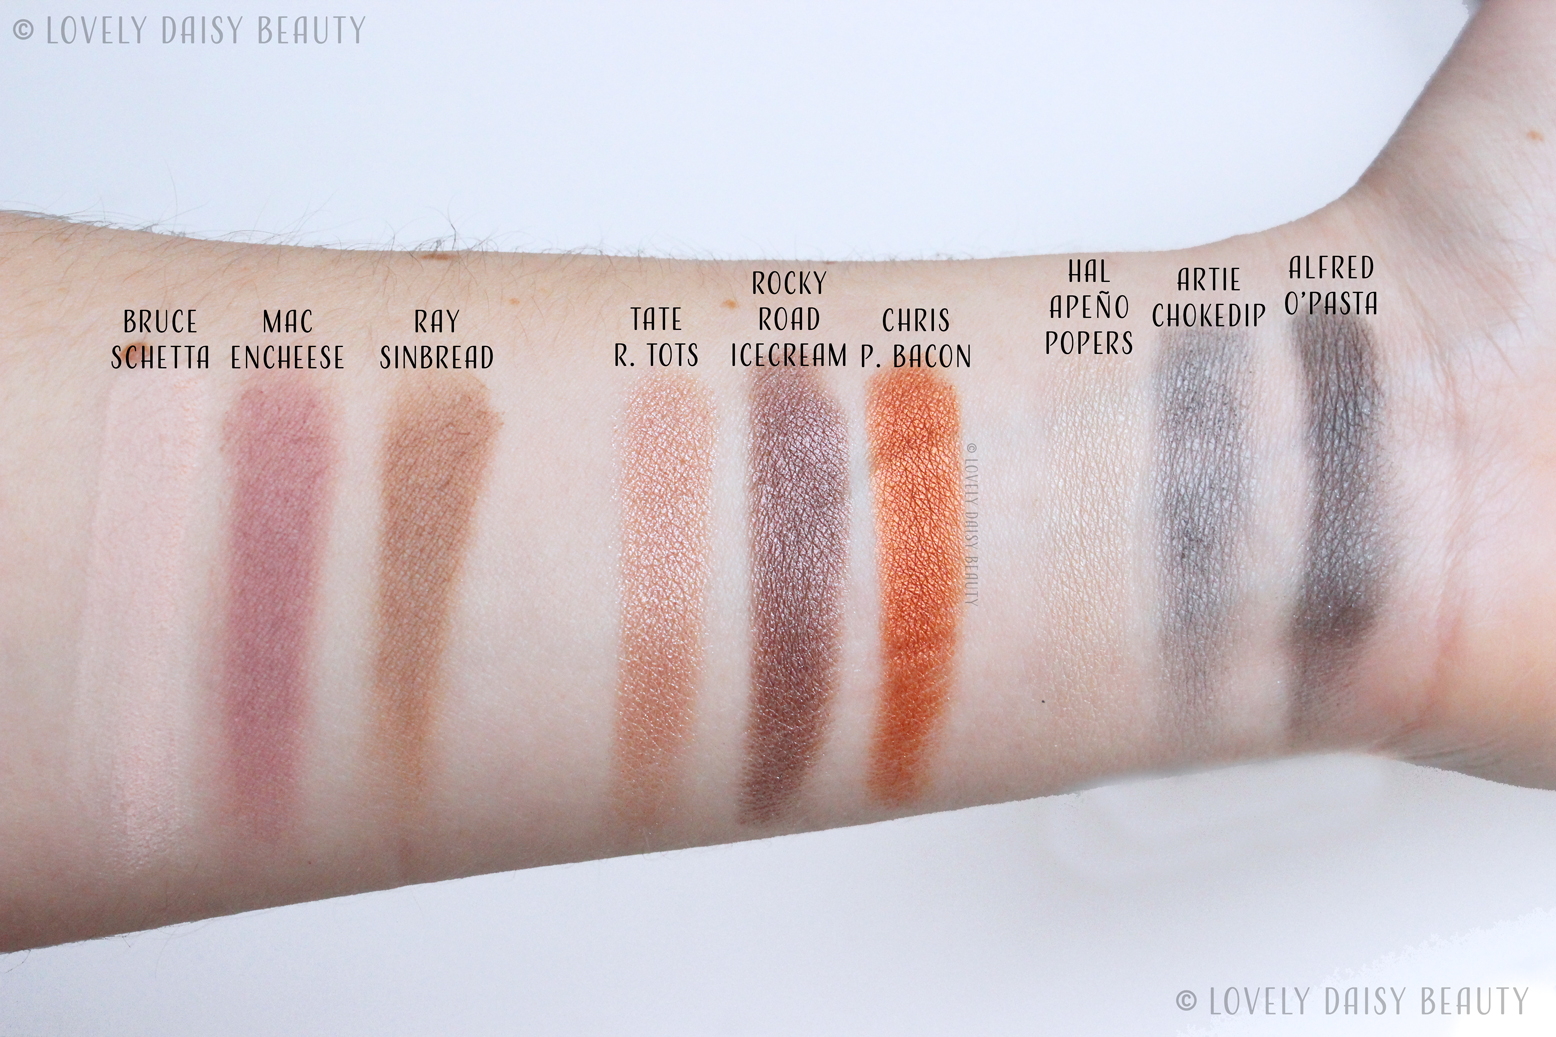 The-Balm-Appétit-Palette-6-swatches